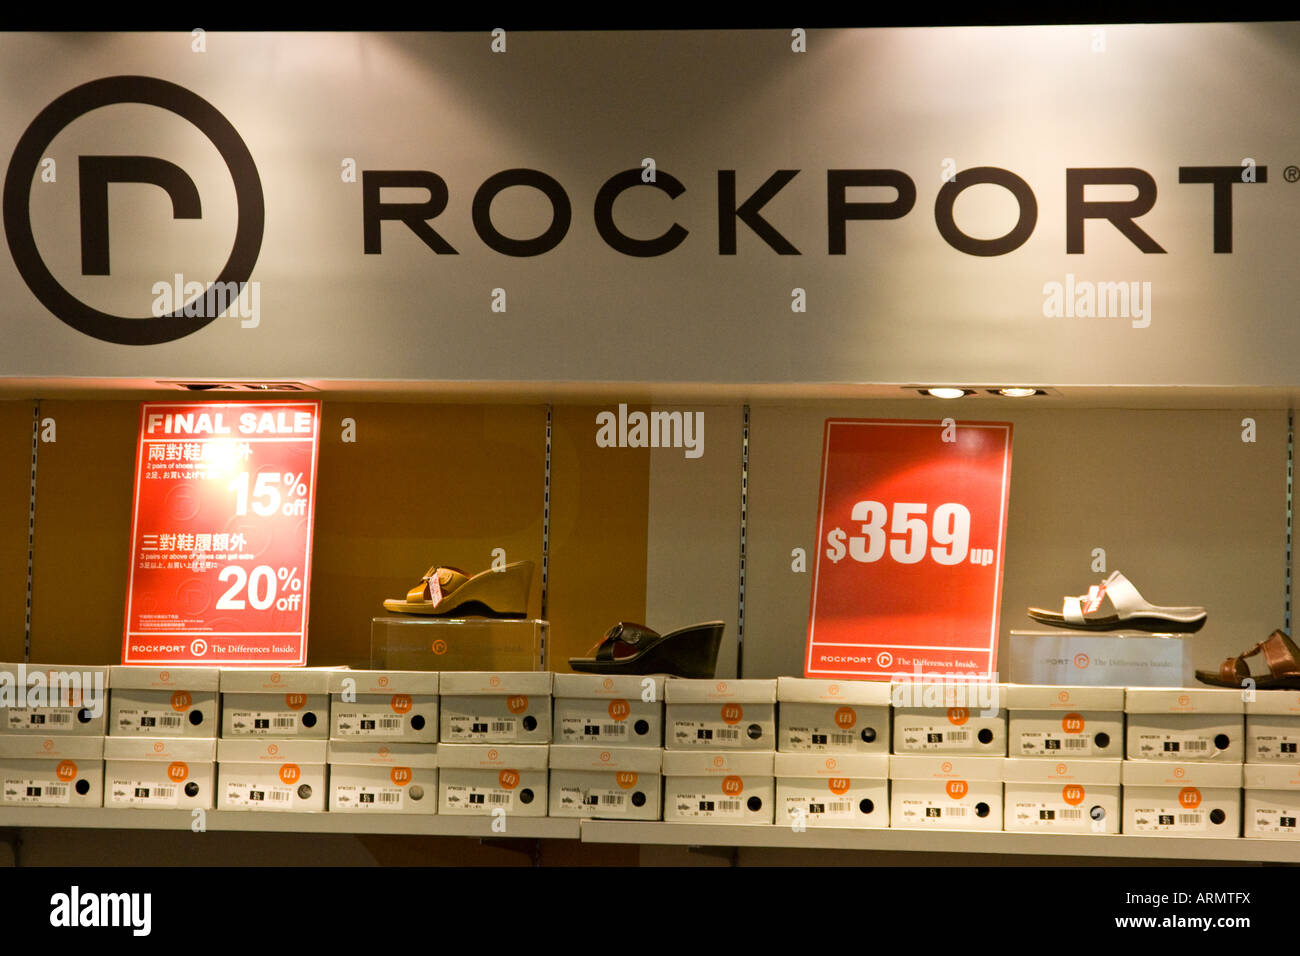 Rockport Shoe Store Hong Kong